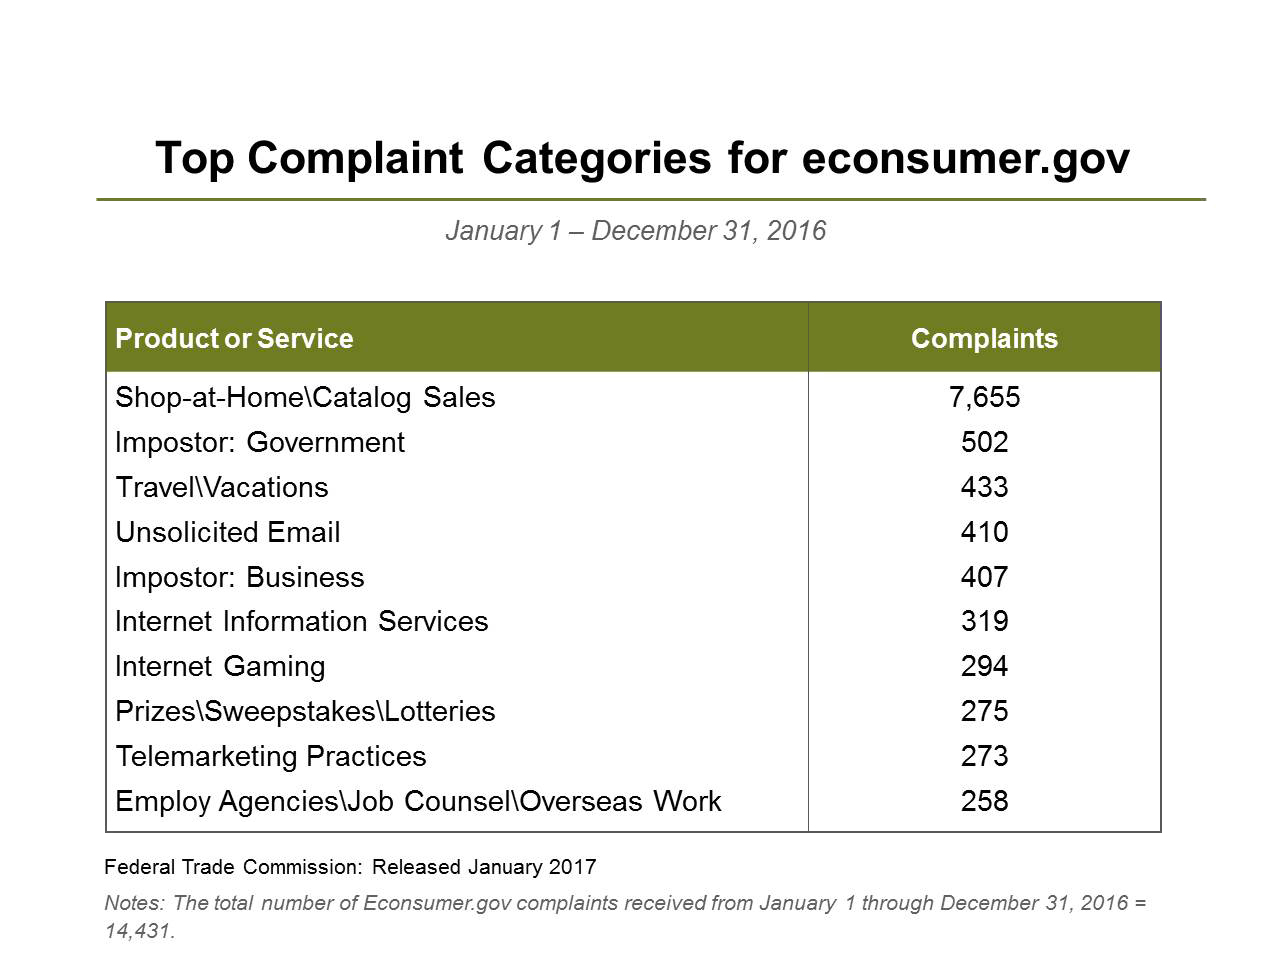 Top Products or Services for Econsumer.gov Complaints